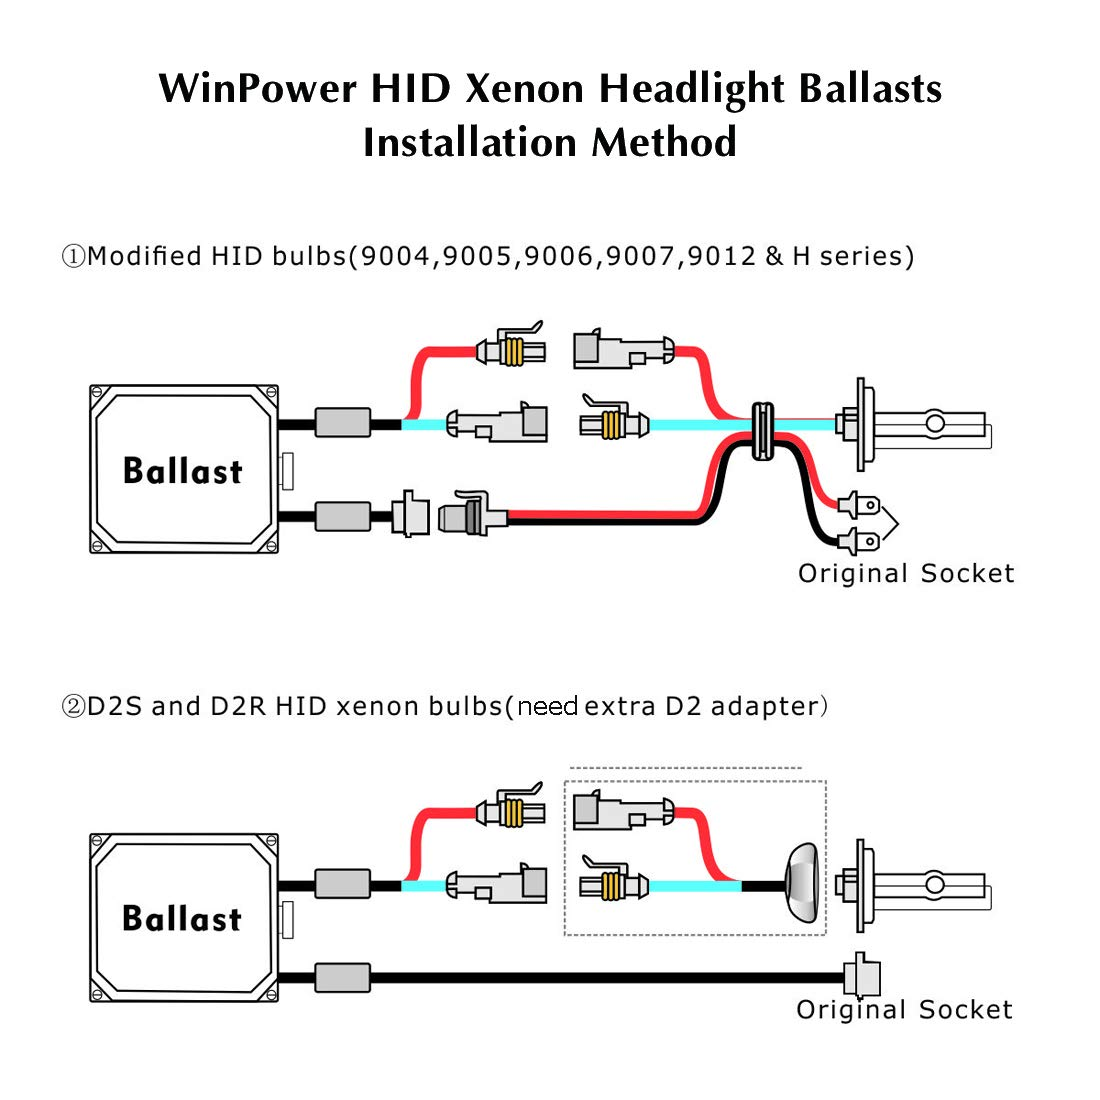 AC WinPower 35W Alternate Current HID Xenon Headlight Ballast Universal Fit for H11 H8 H9 9006 9005 H1 H3 H4 H7 H13 2 Pieces